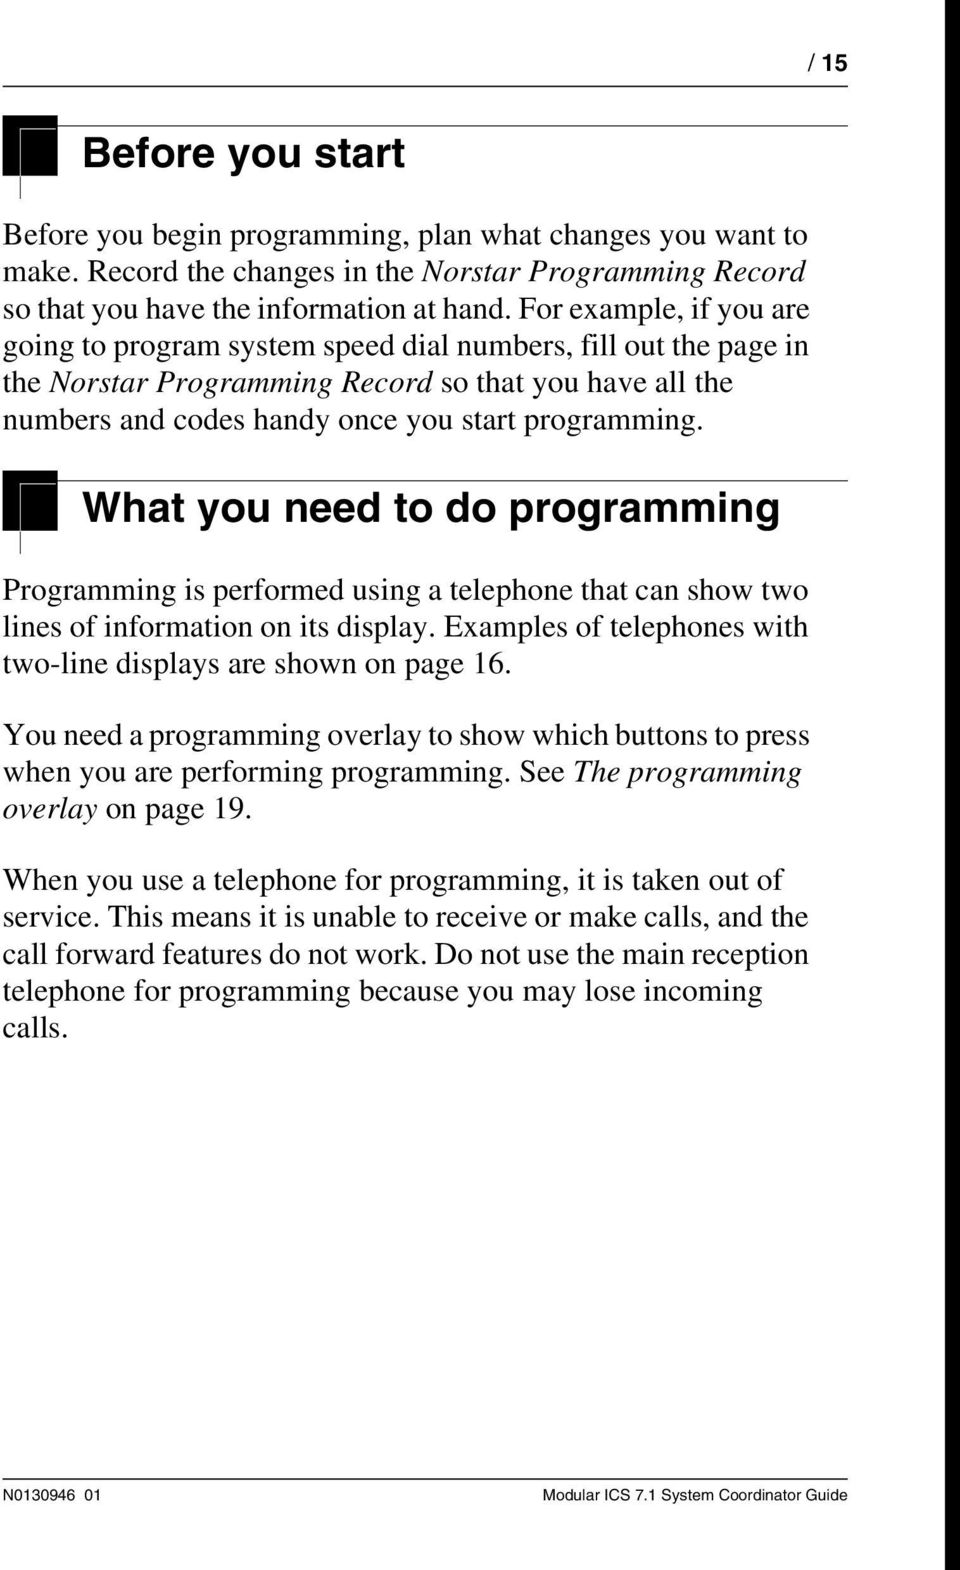 What you need to do programming Programming is performed using a telephone that can show two lines of information on its display. Examples of telephones with two-line displays are shown on page 16.